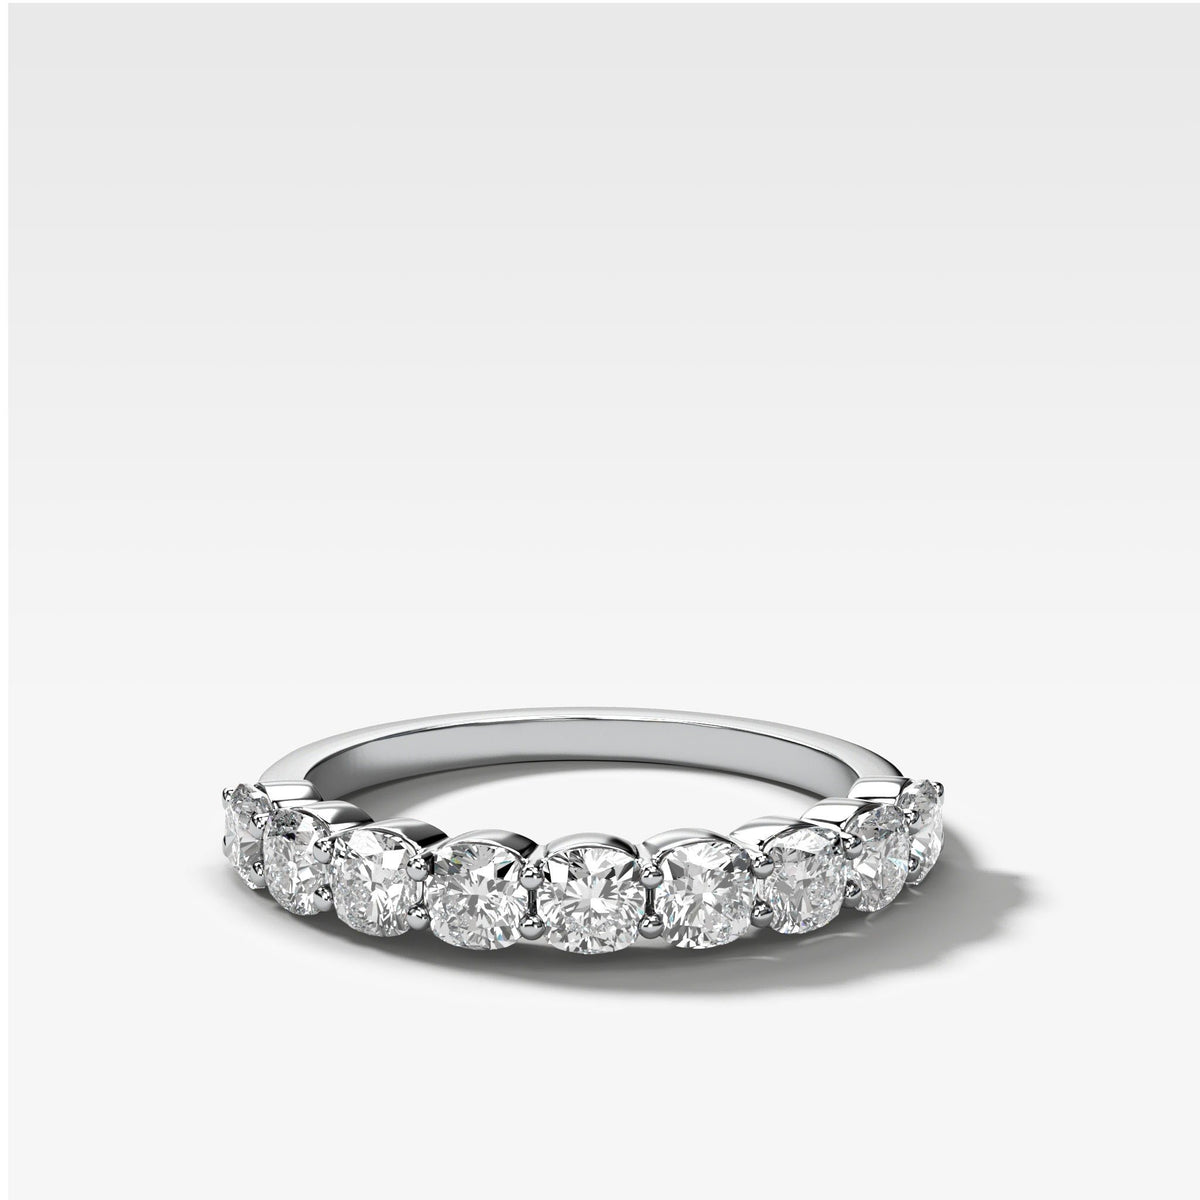 Cushion Cut Shared Prong Stacker in White Gold by Good Stone